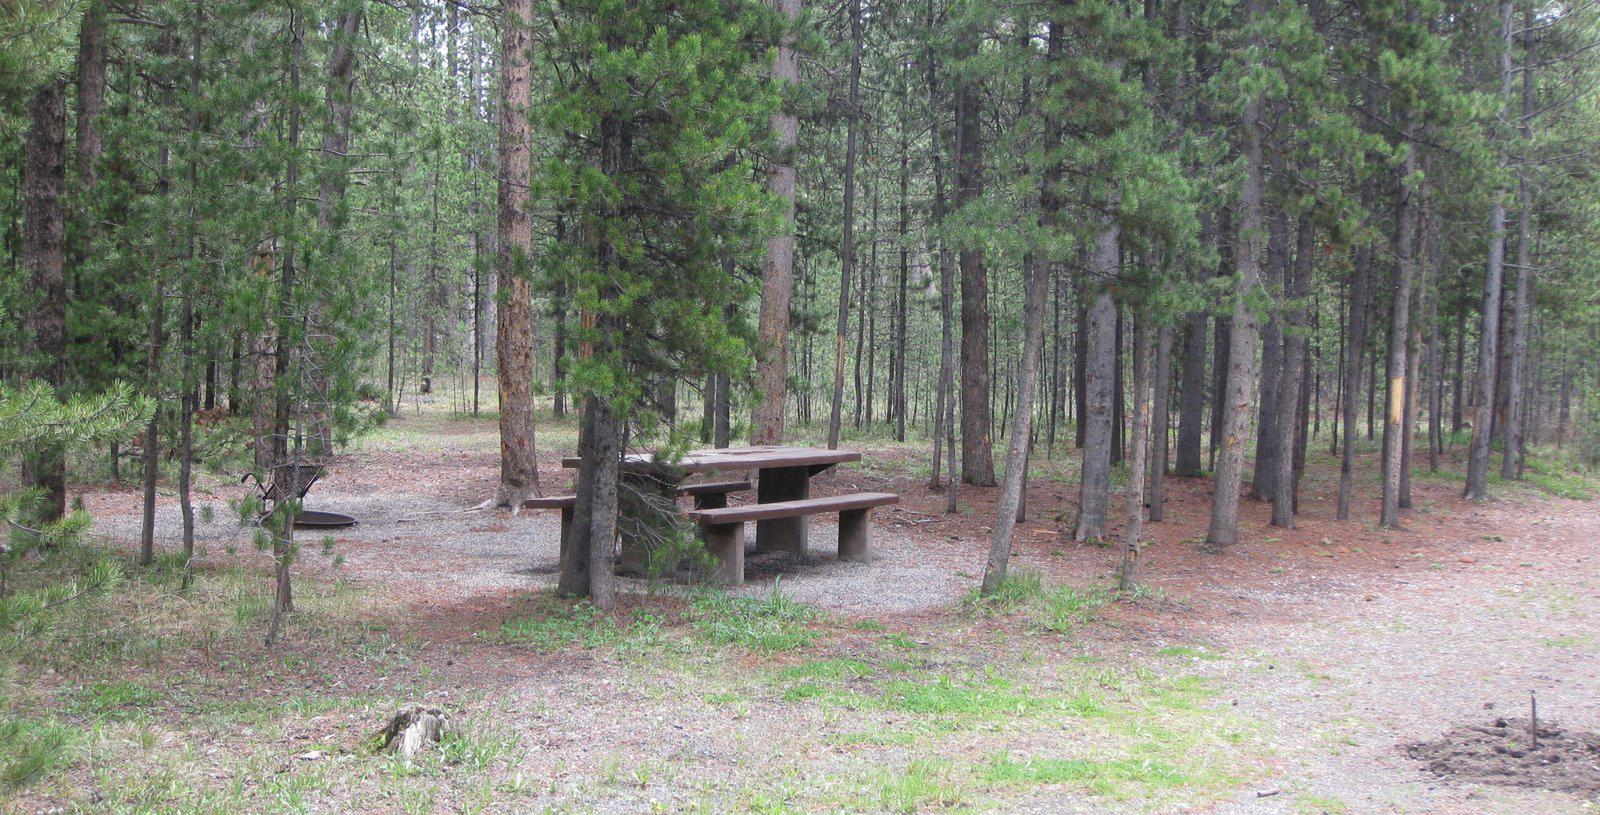 Site A13, surrounded by pine trees, picnic table & fire ringSite A13